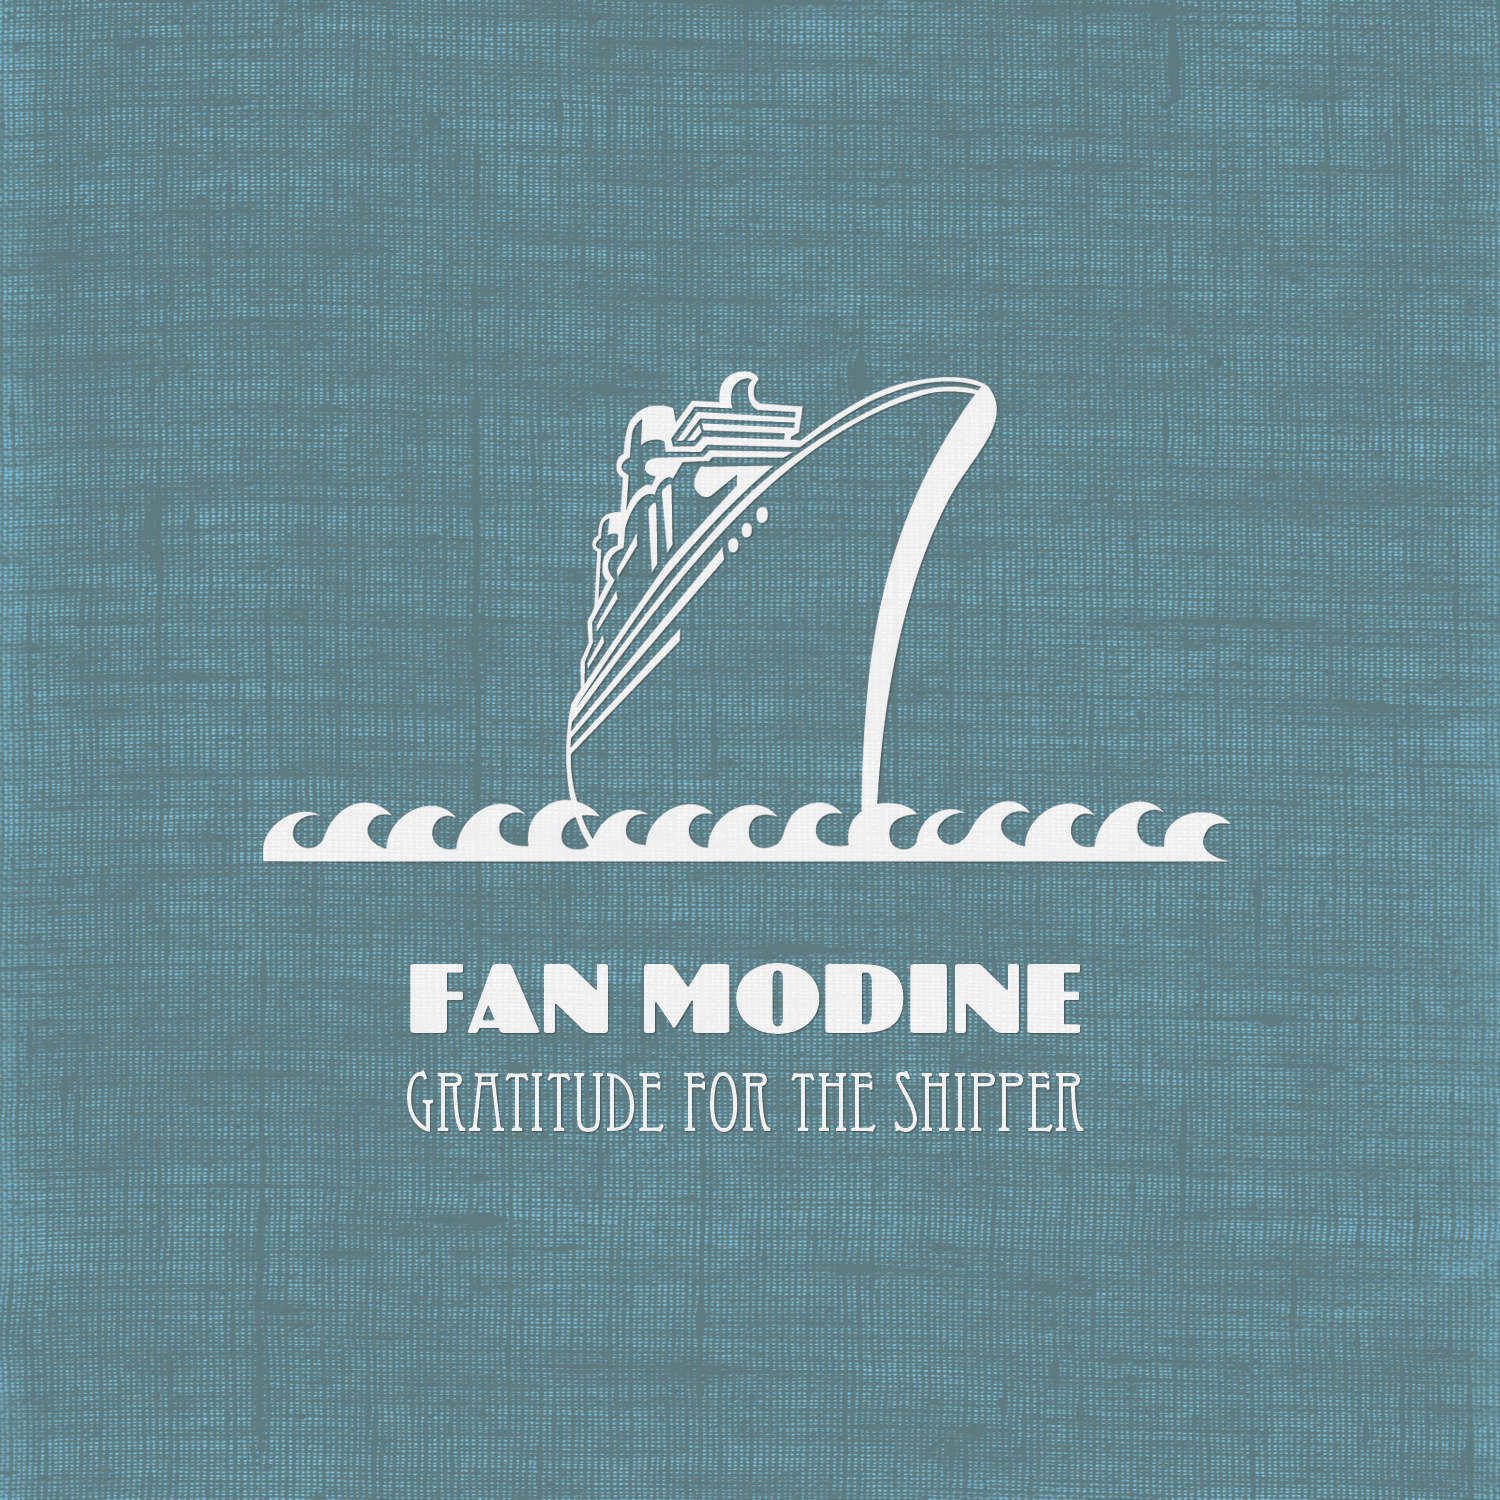 "Fan Modine   When Magnet hails your first release as the work of ""an elliptical and underrated genius,"" the bar is set high. However, with each release following Slow Road To Tiny Empire (Rykodisc),  Gordon Zacharias , along with an ever-changing cast of East Coast heavyweights he refers to as ""Fan Modine,"" has delivered on that initial promise.  2004's Homeland melds classic pop with an outsider artist's sensibility. Following the bursting of the dot-com bubble, Homeland was written while Zacharias was living in a record store in Downtown Manhattan on a cot above the vinyl aisle and working as a professional dog walker for a host of Page 6 notables. The album went on to score high marks in the press, including an 8.0 in Pitchfork. After relocating to Carrboro, NC, Zacharias formed a solid lineup to promote the album's release with Ash Bowie of Polvo, Jeremy Chatelain of Jets to Brazil, Lee Waters from Dean & Britta, and Chuck Johnson from Shark Quest.  This same lineup laid the groundwork for 2011's  Gratitude For The Shipper ; an ambitious collection that retains the magic of the previous releases, with its lush orchestration and rich production courtesy of years of sporadic basement overdubs. Zacharias completed the record with help from indie pioneers Chris Stamey and Mitch Easter. The extravagance all nods to chamber pop heroes Procol Harum, The Left Banke and XTC, yet breaks new ground. Gratitude feels like a song cycle, but without pretension; a concept record that allows you to choose your own adventure. The album was toured heavily with featured slots at NYC Popfest and the Chickfactor festival.  Considering previous Fan Modine releases have come along once every six years, the fact that a new album will be hitting the streets in under three implies that Zacharias may be in the midst of his most fertile creative period to date. With a new band consisting of Alex Maiolo (libraness), Tony Stiglitz (lakes&woods), and James DeDakis (Wages), the record was recorded with Mitch Easter at Fidelitorium, and mixed by celebrated Boston recordist and Tape-Op contributor Pete Weiss at his Verdant studio in Vermont. Featuring vocal and guitar contributions by Joah Tunnel (Lost in the Trees) and Stevie Jackson (Belle and Sebastian), Cause Célèbre crashes down the gate of social divides and existential yearning -- with a nod to glam and psychedelia.  Due in April 2014 on Lost Colony Music,  Cause Célèbre  sets a new standard for Fan Modine, both thematically and in its concise execution."